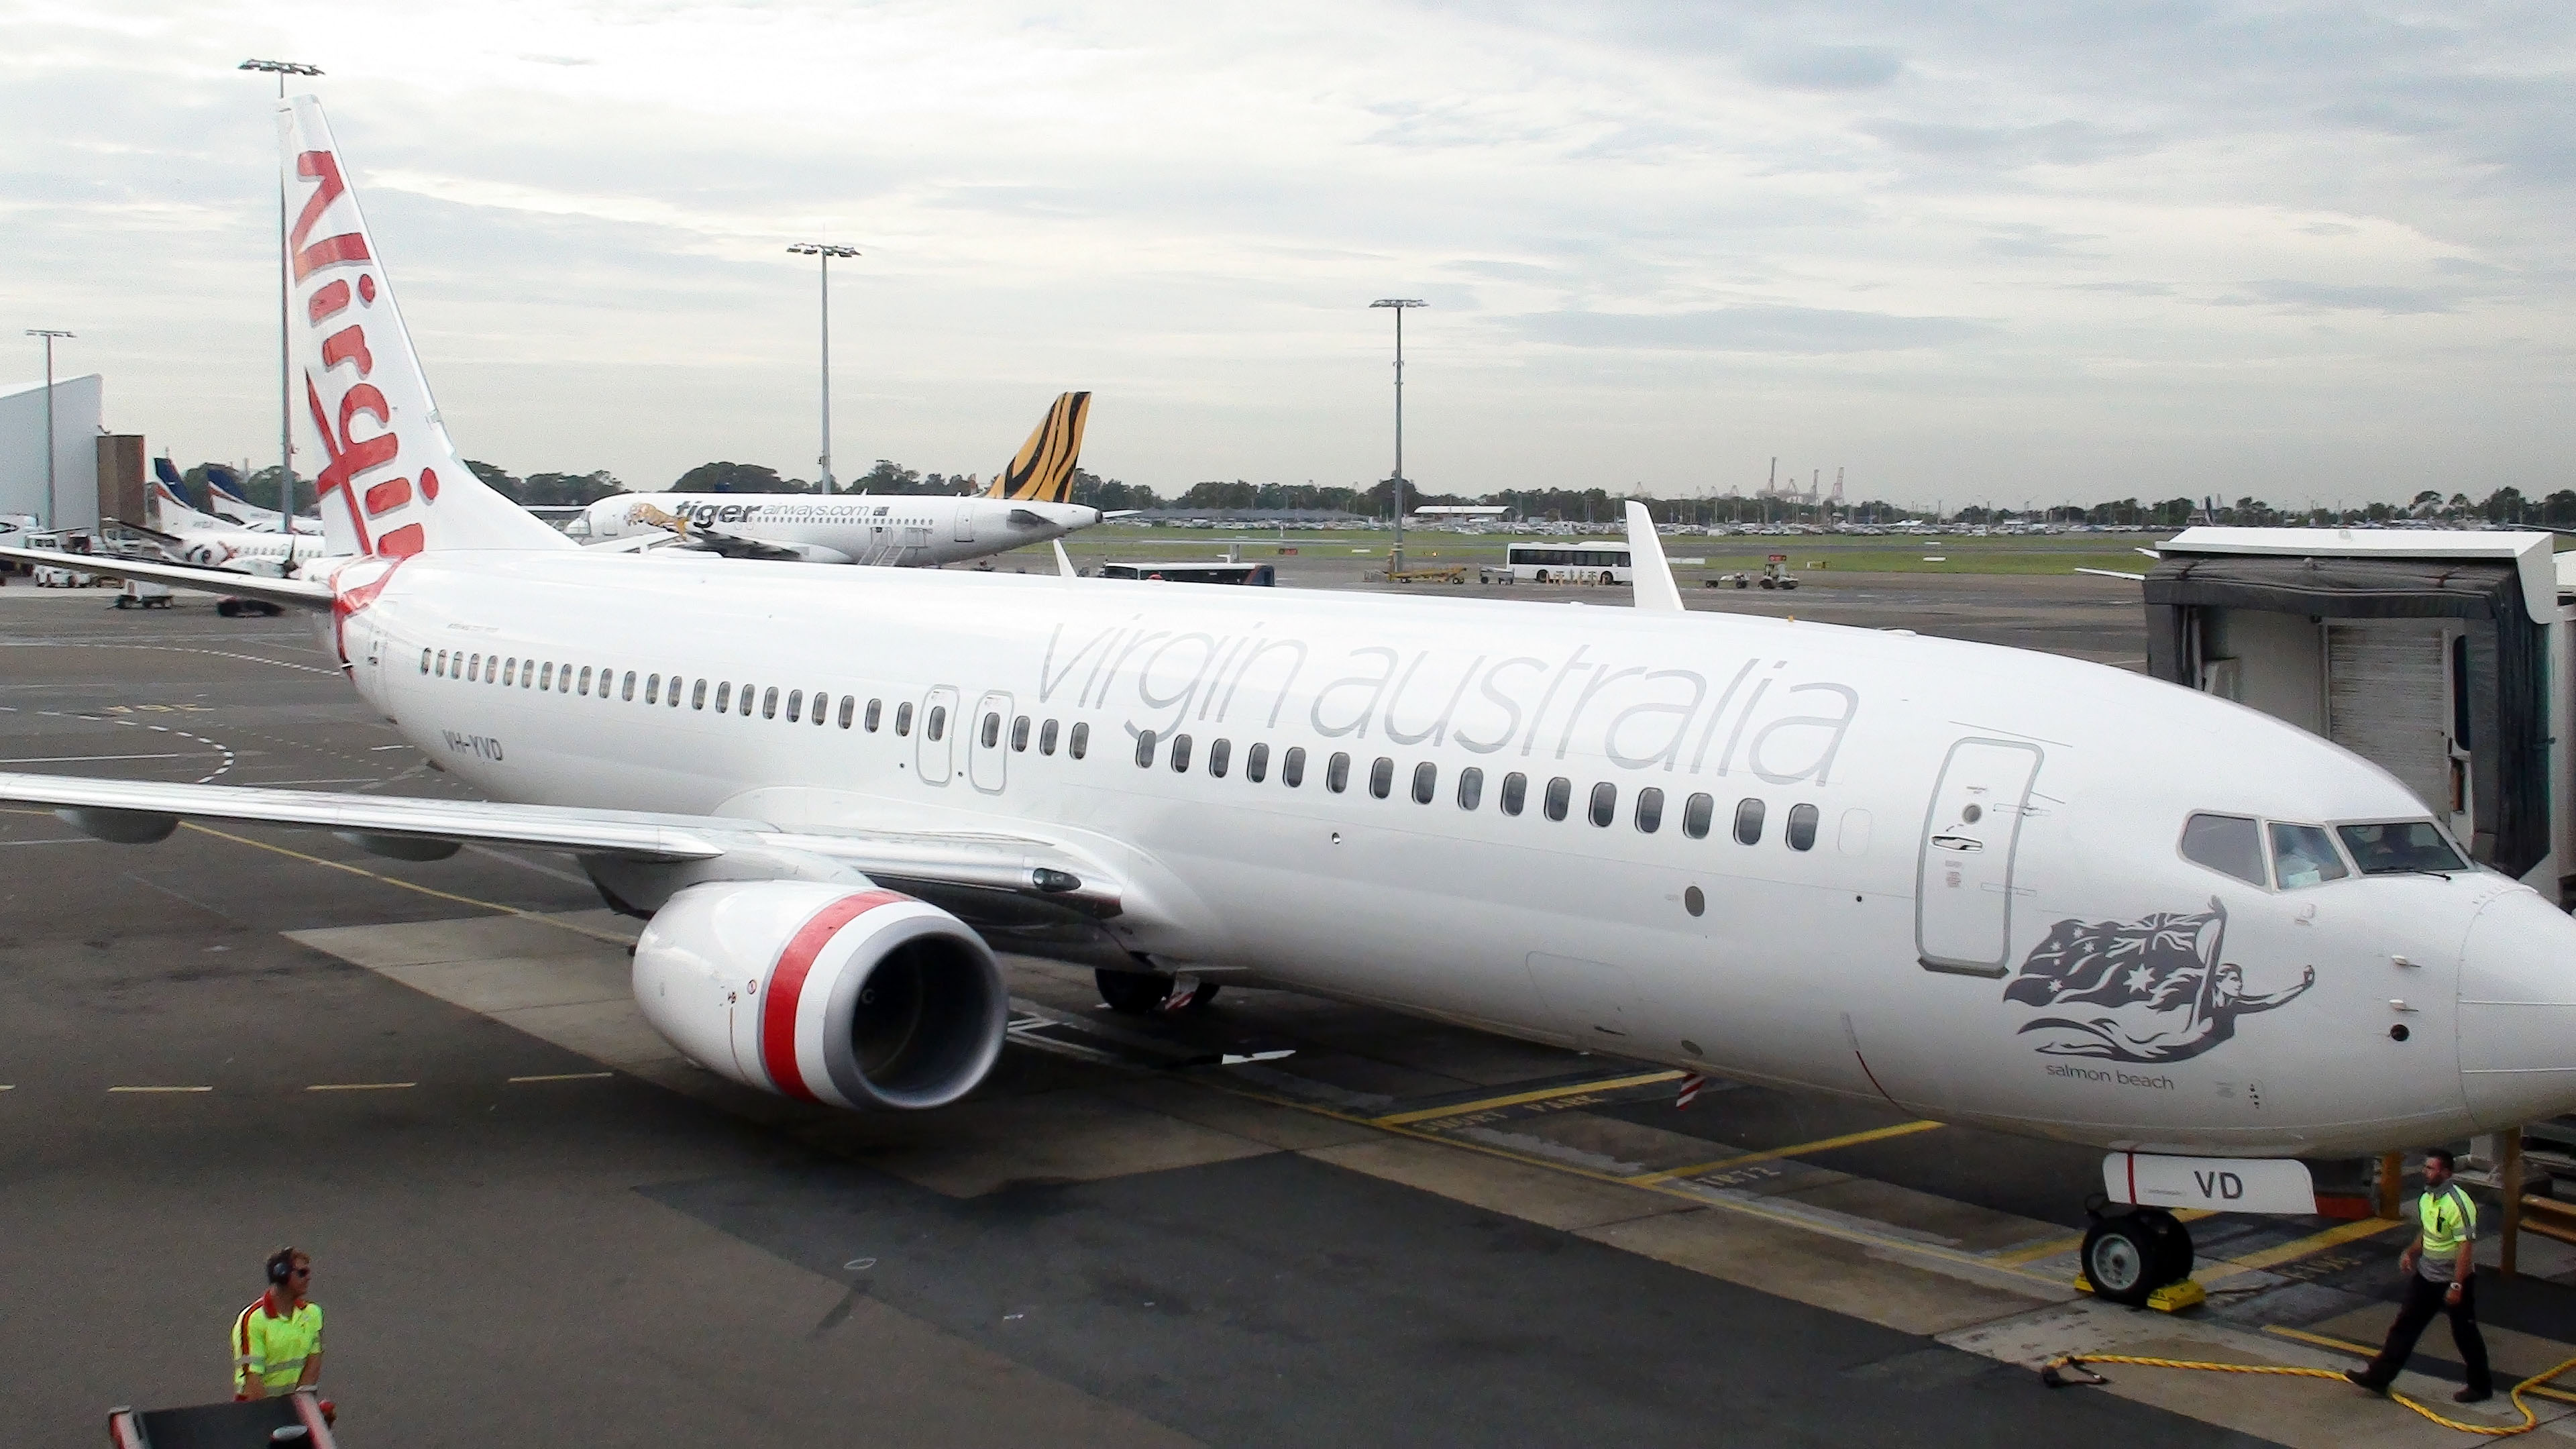 Virgin Australia passenger says dog was left sitting in 93-degree weather while luggage loaded